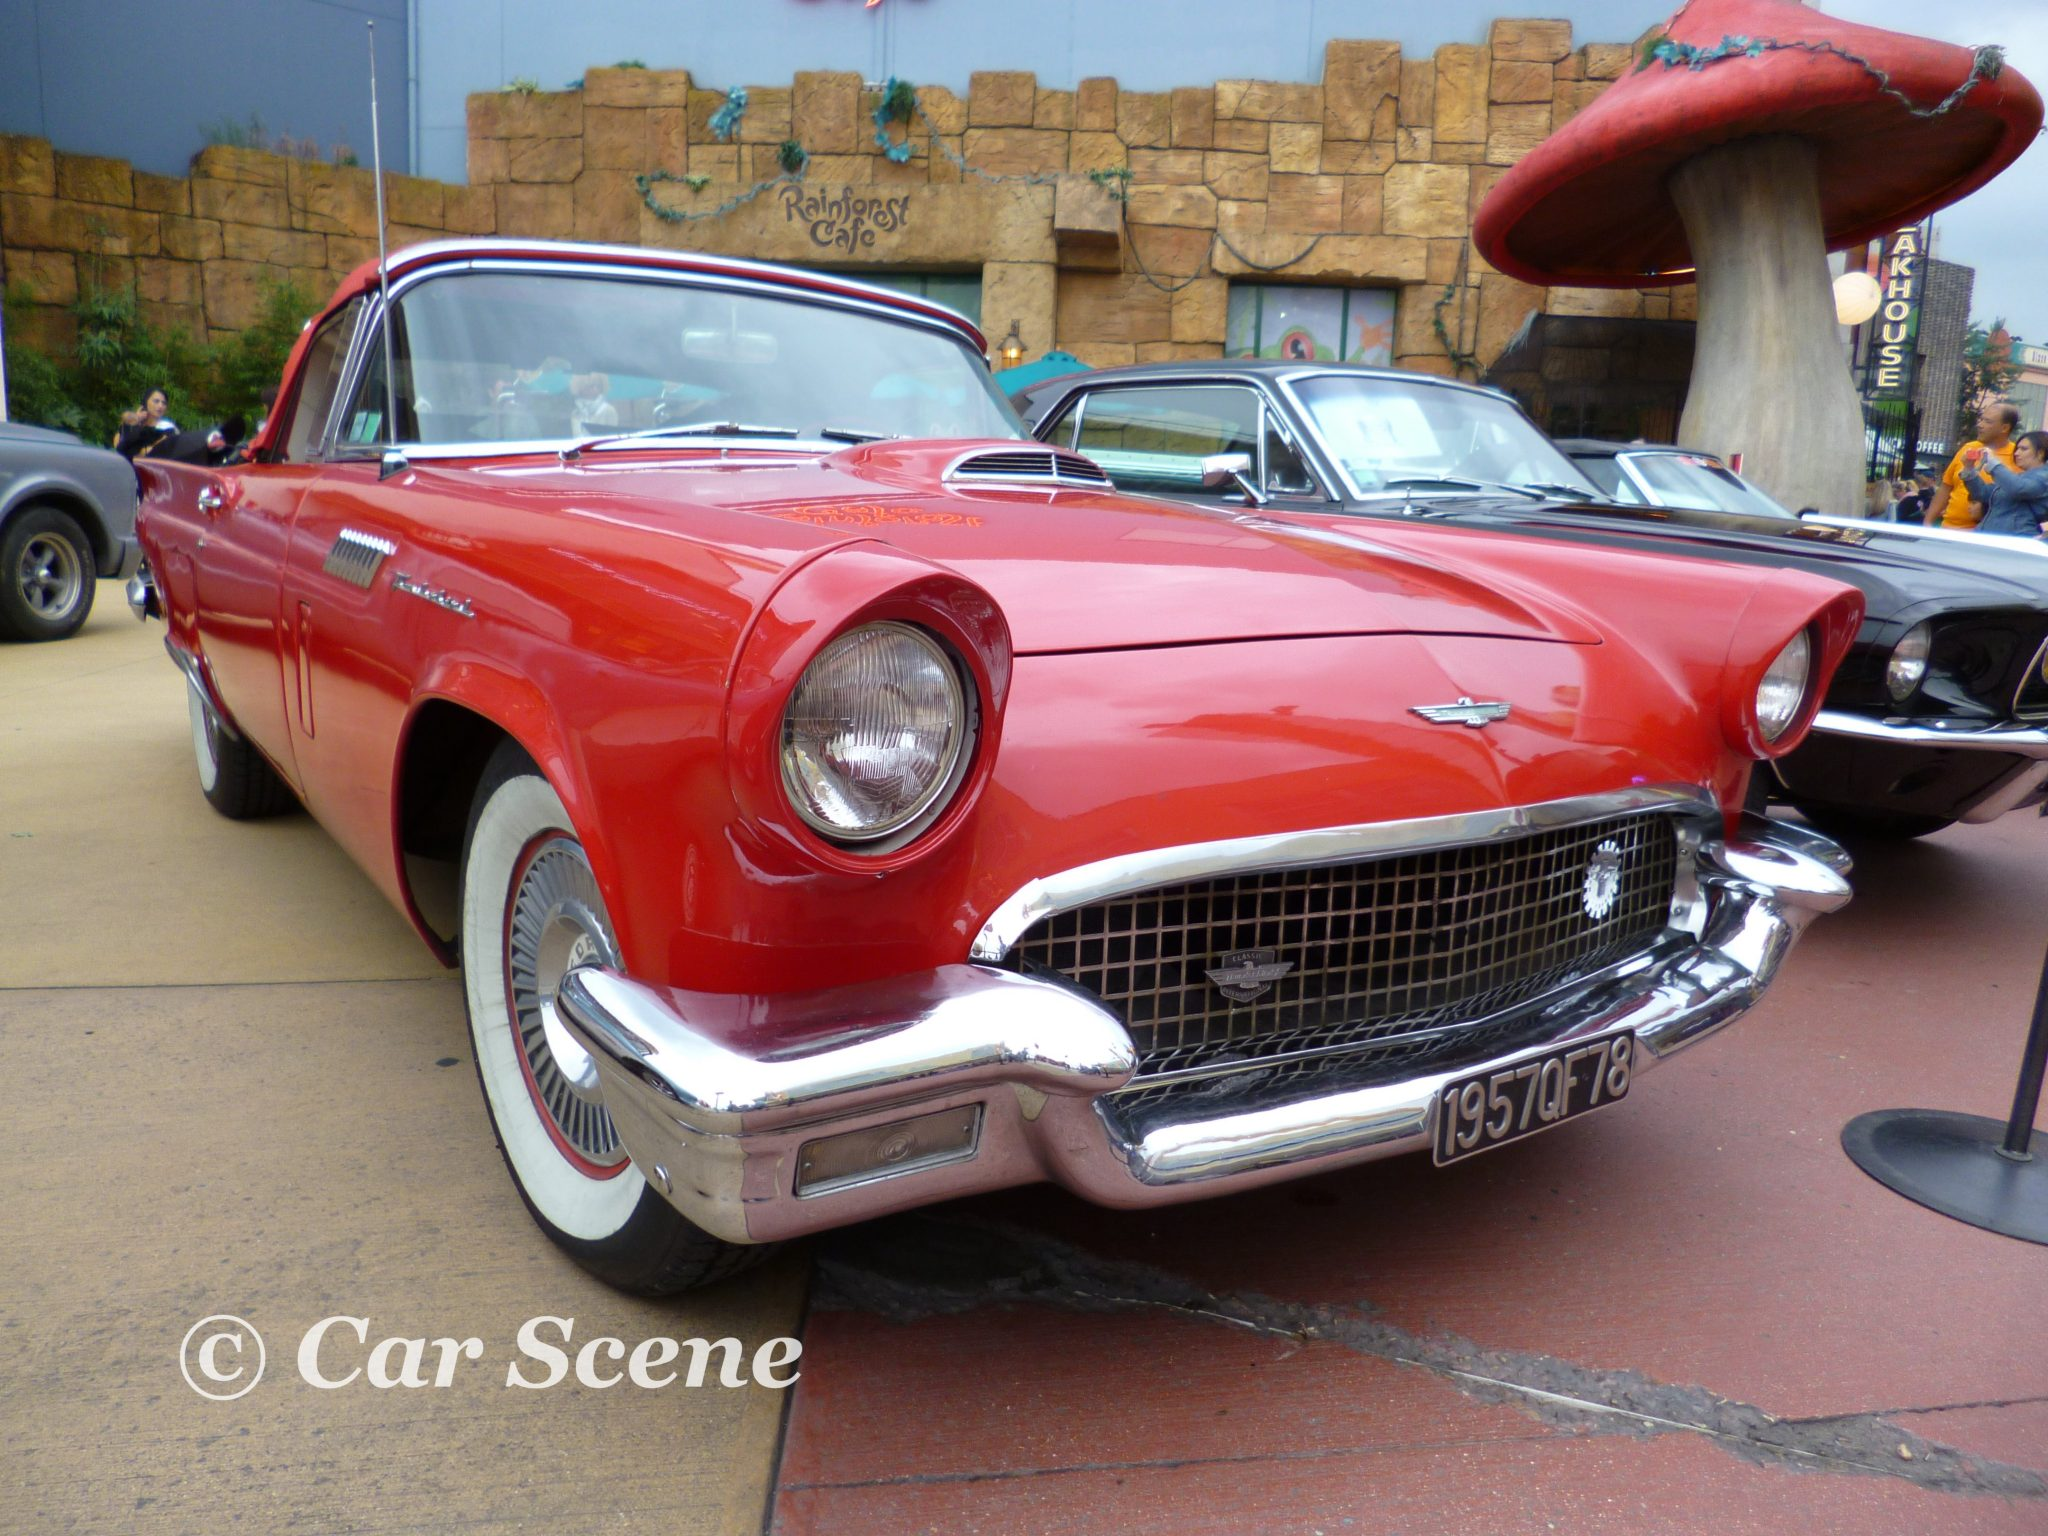 1957 Ford Thunderbird front view